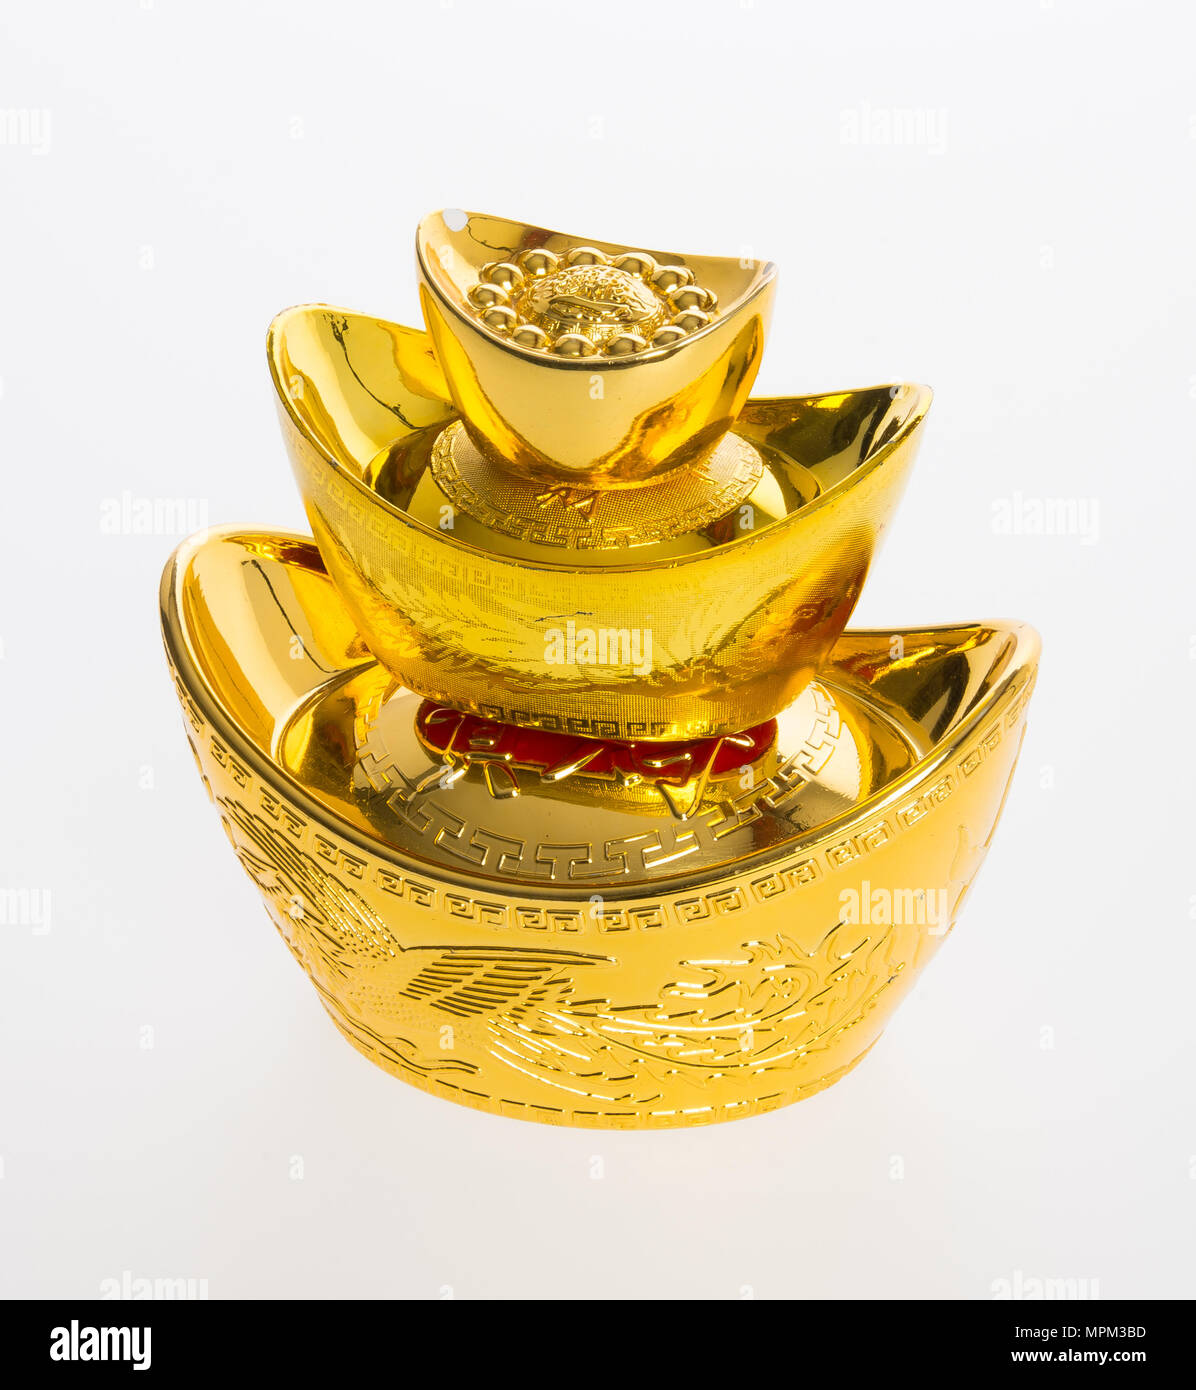 Gold Or Chinese Gold Ingot Mean Symbols Of Wealth And Prosperity On